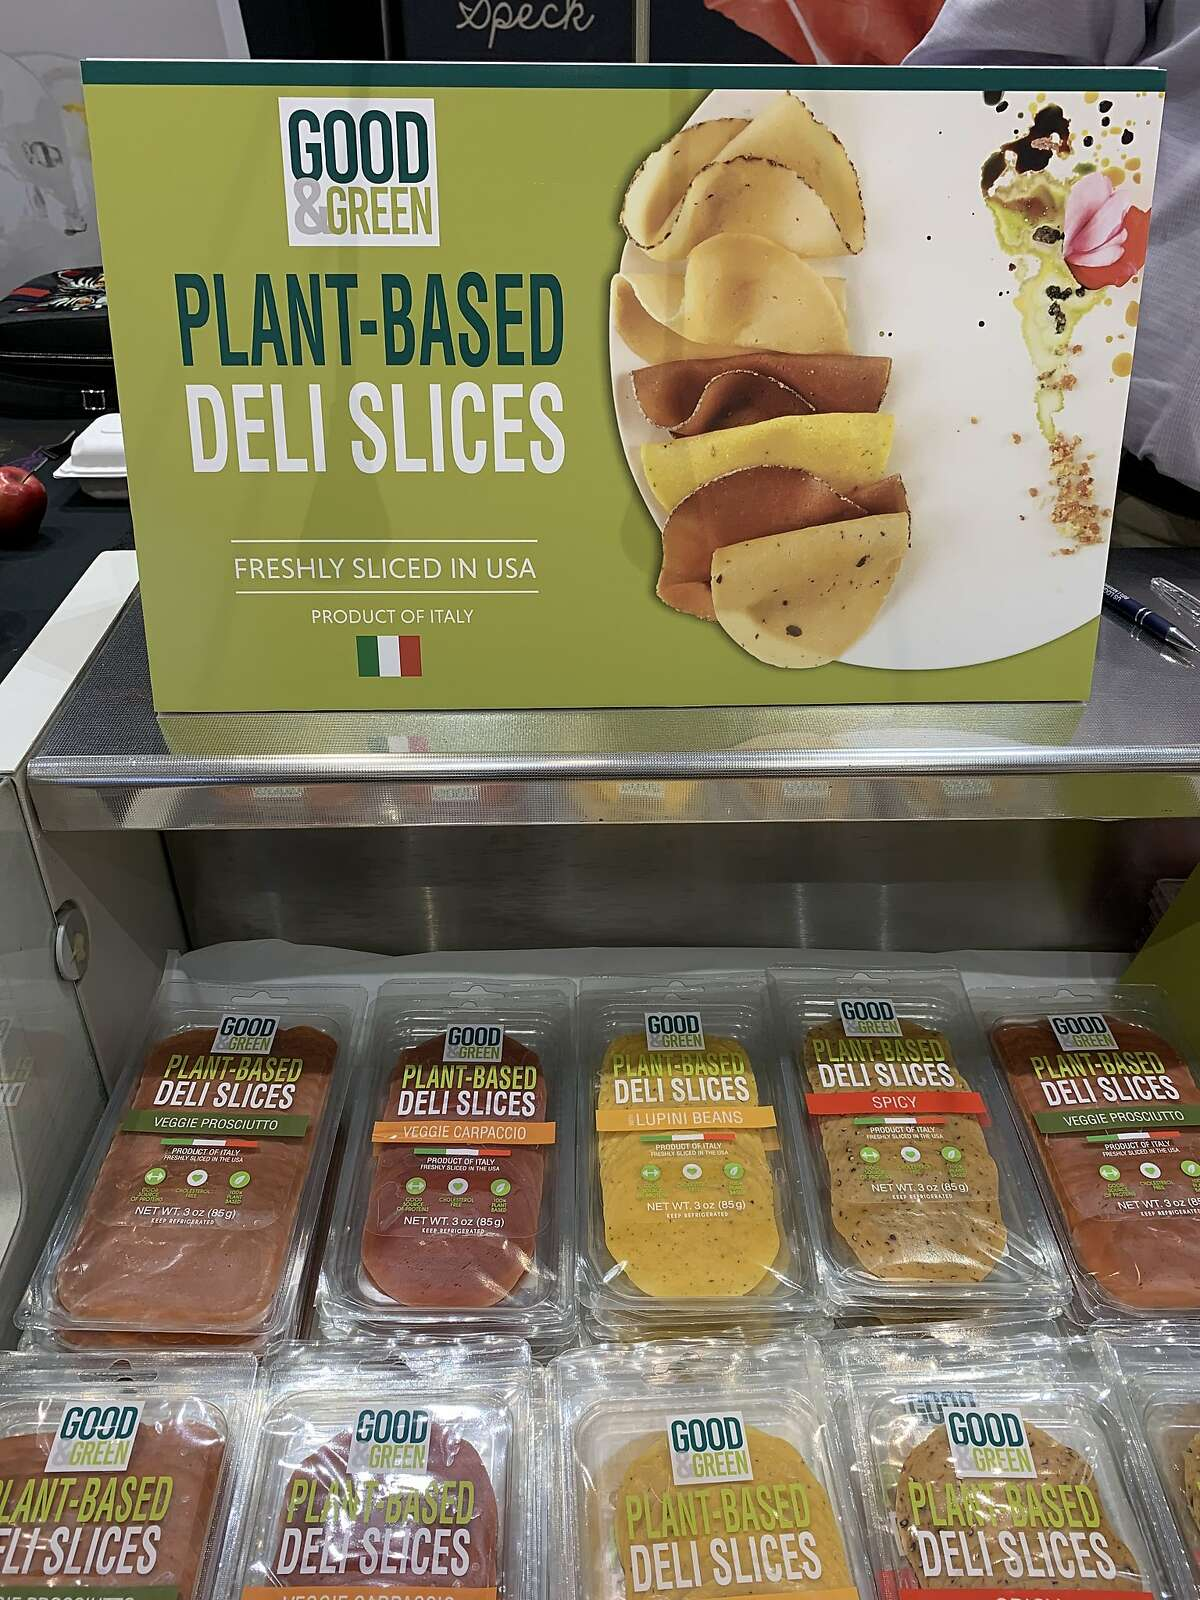 Maestri D'Italia debuted their Italian-made plant-based deli slices, including prosciutto and beef carpaccio, at the Winter Fancy Food Show.